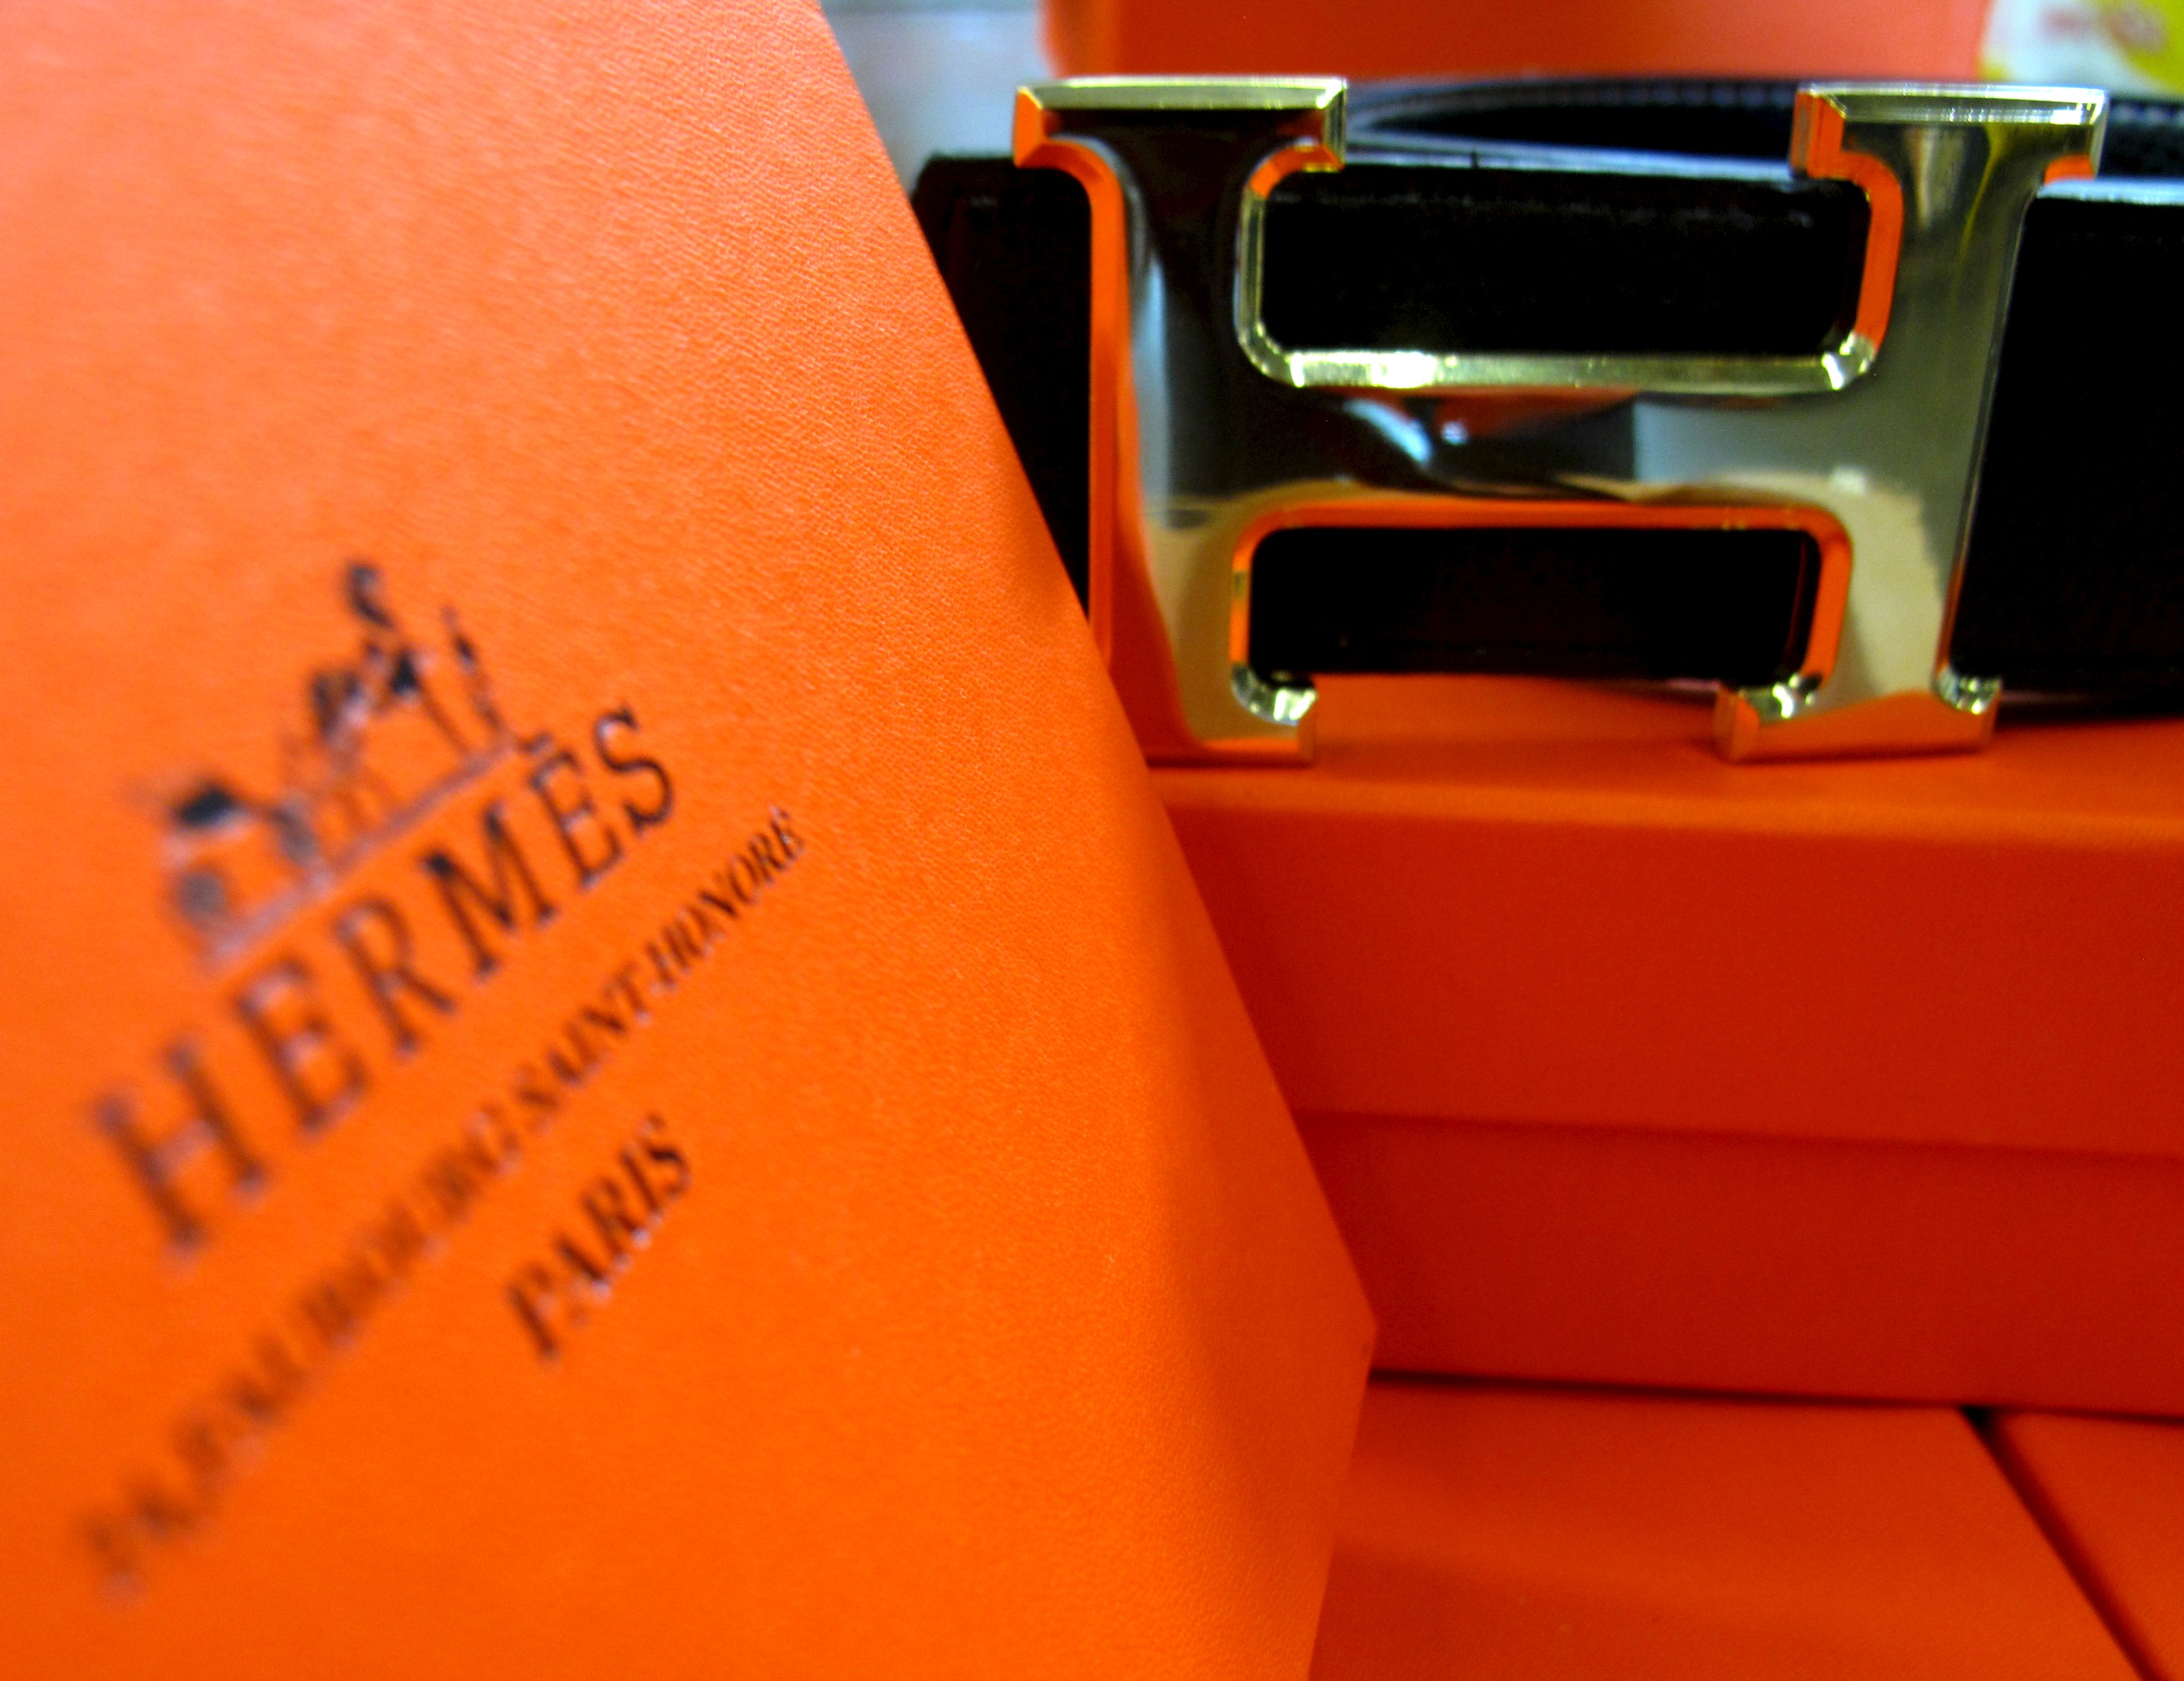 hermes wallets replica - $3.2 Million in Fake Hermes Belts Seized at the L.A. Port